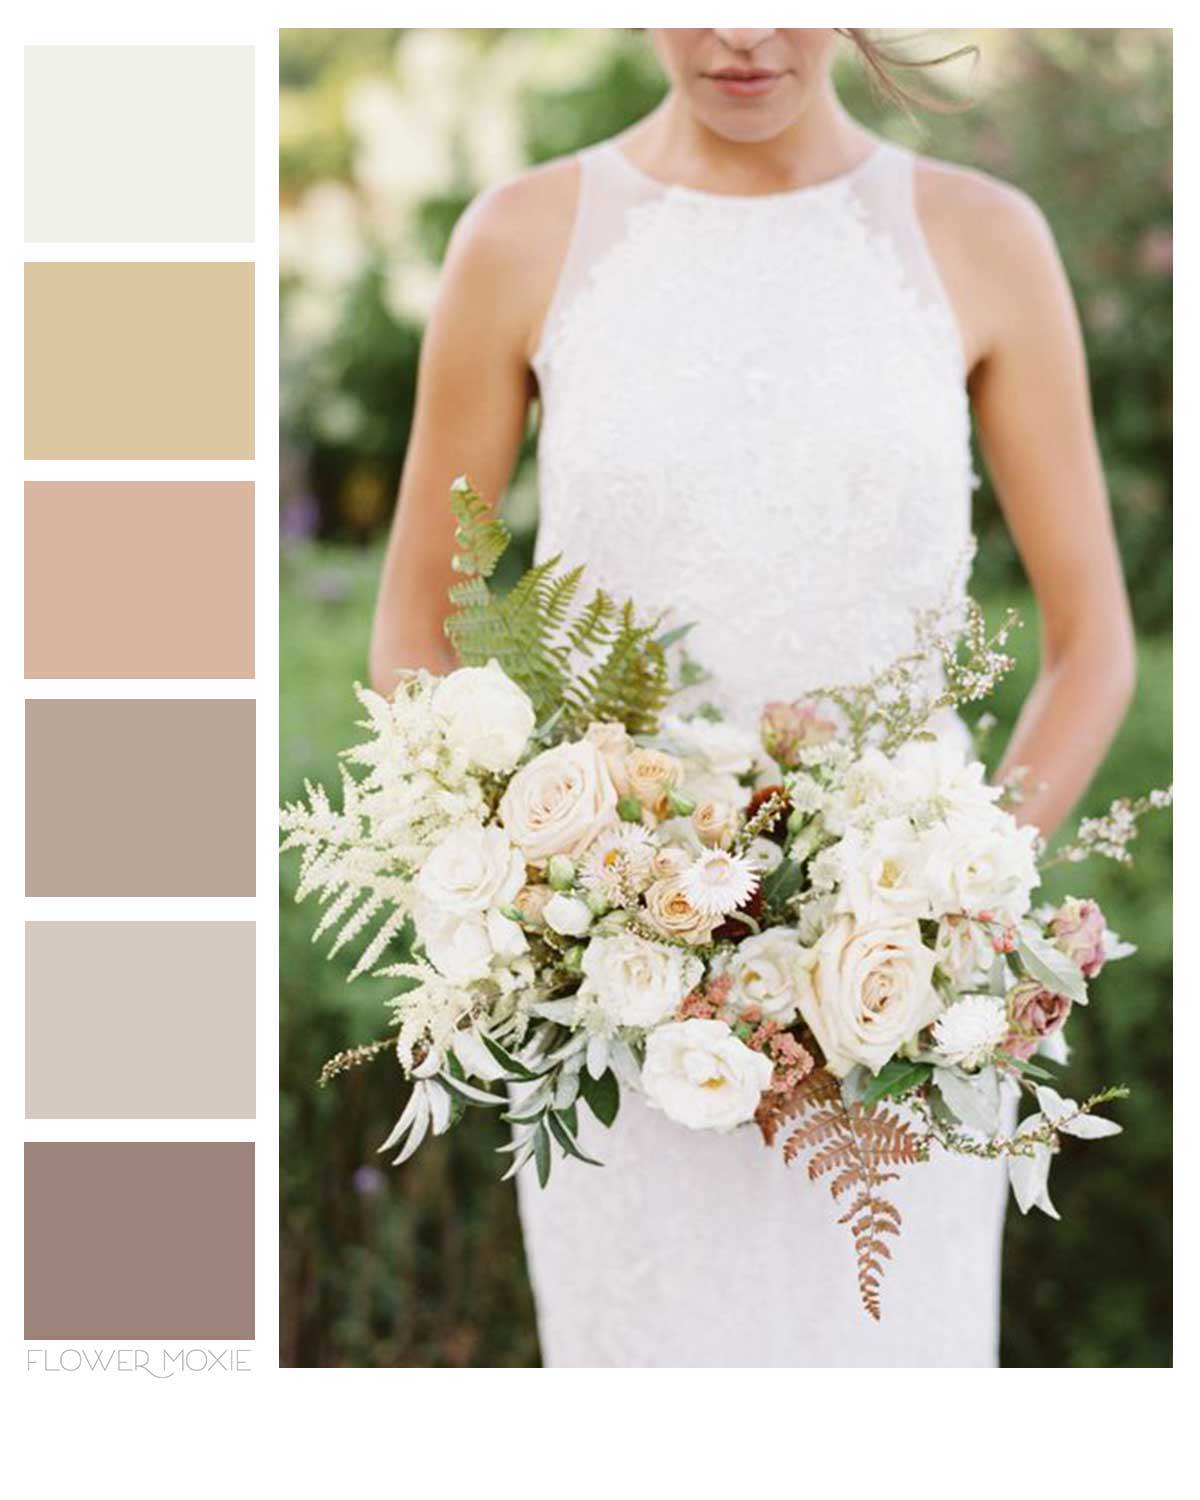 beige and neutral wedding flower packages